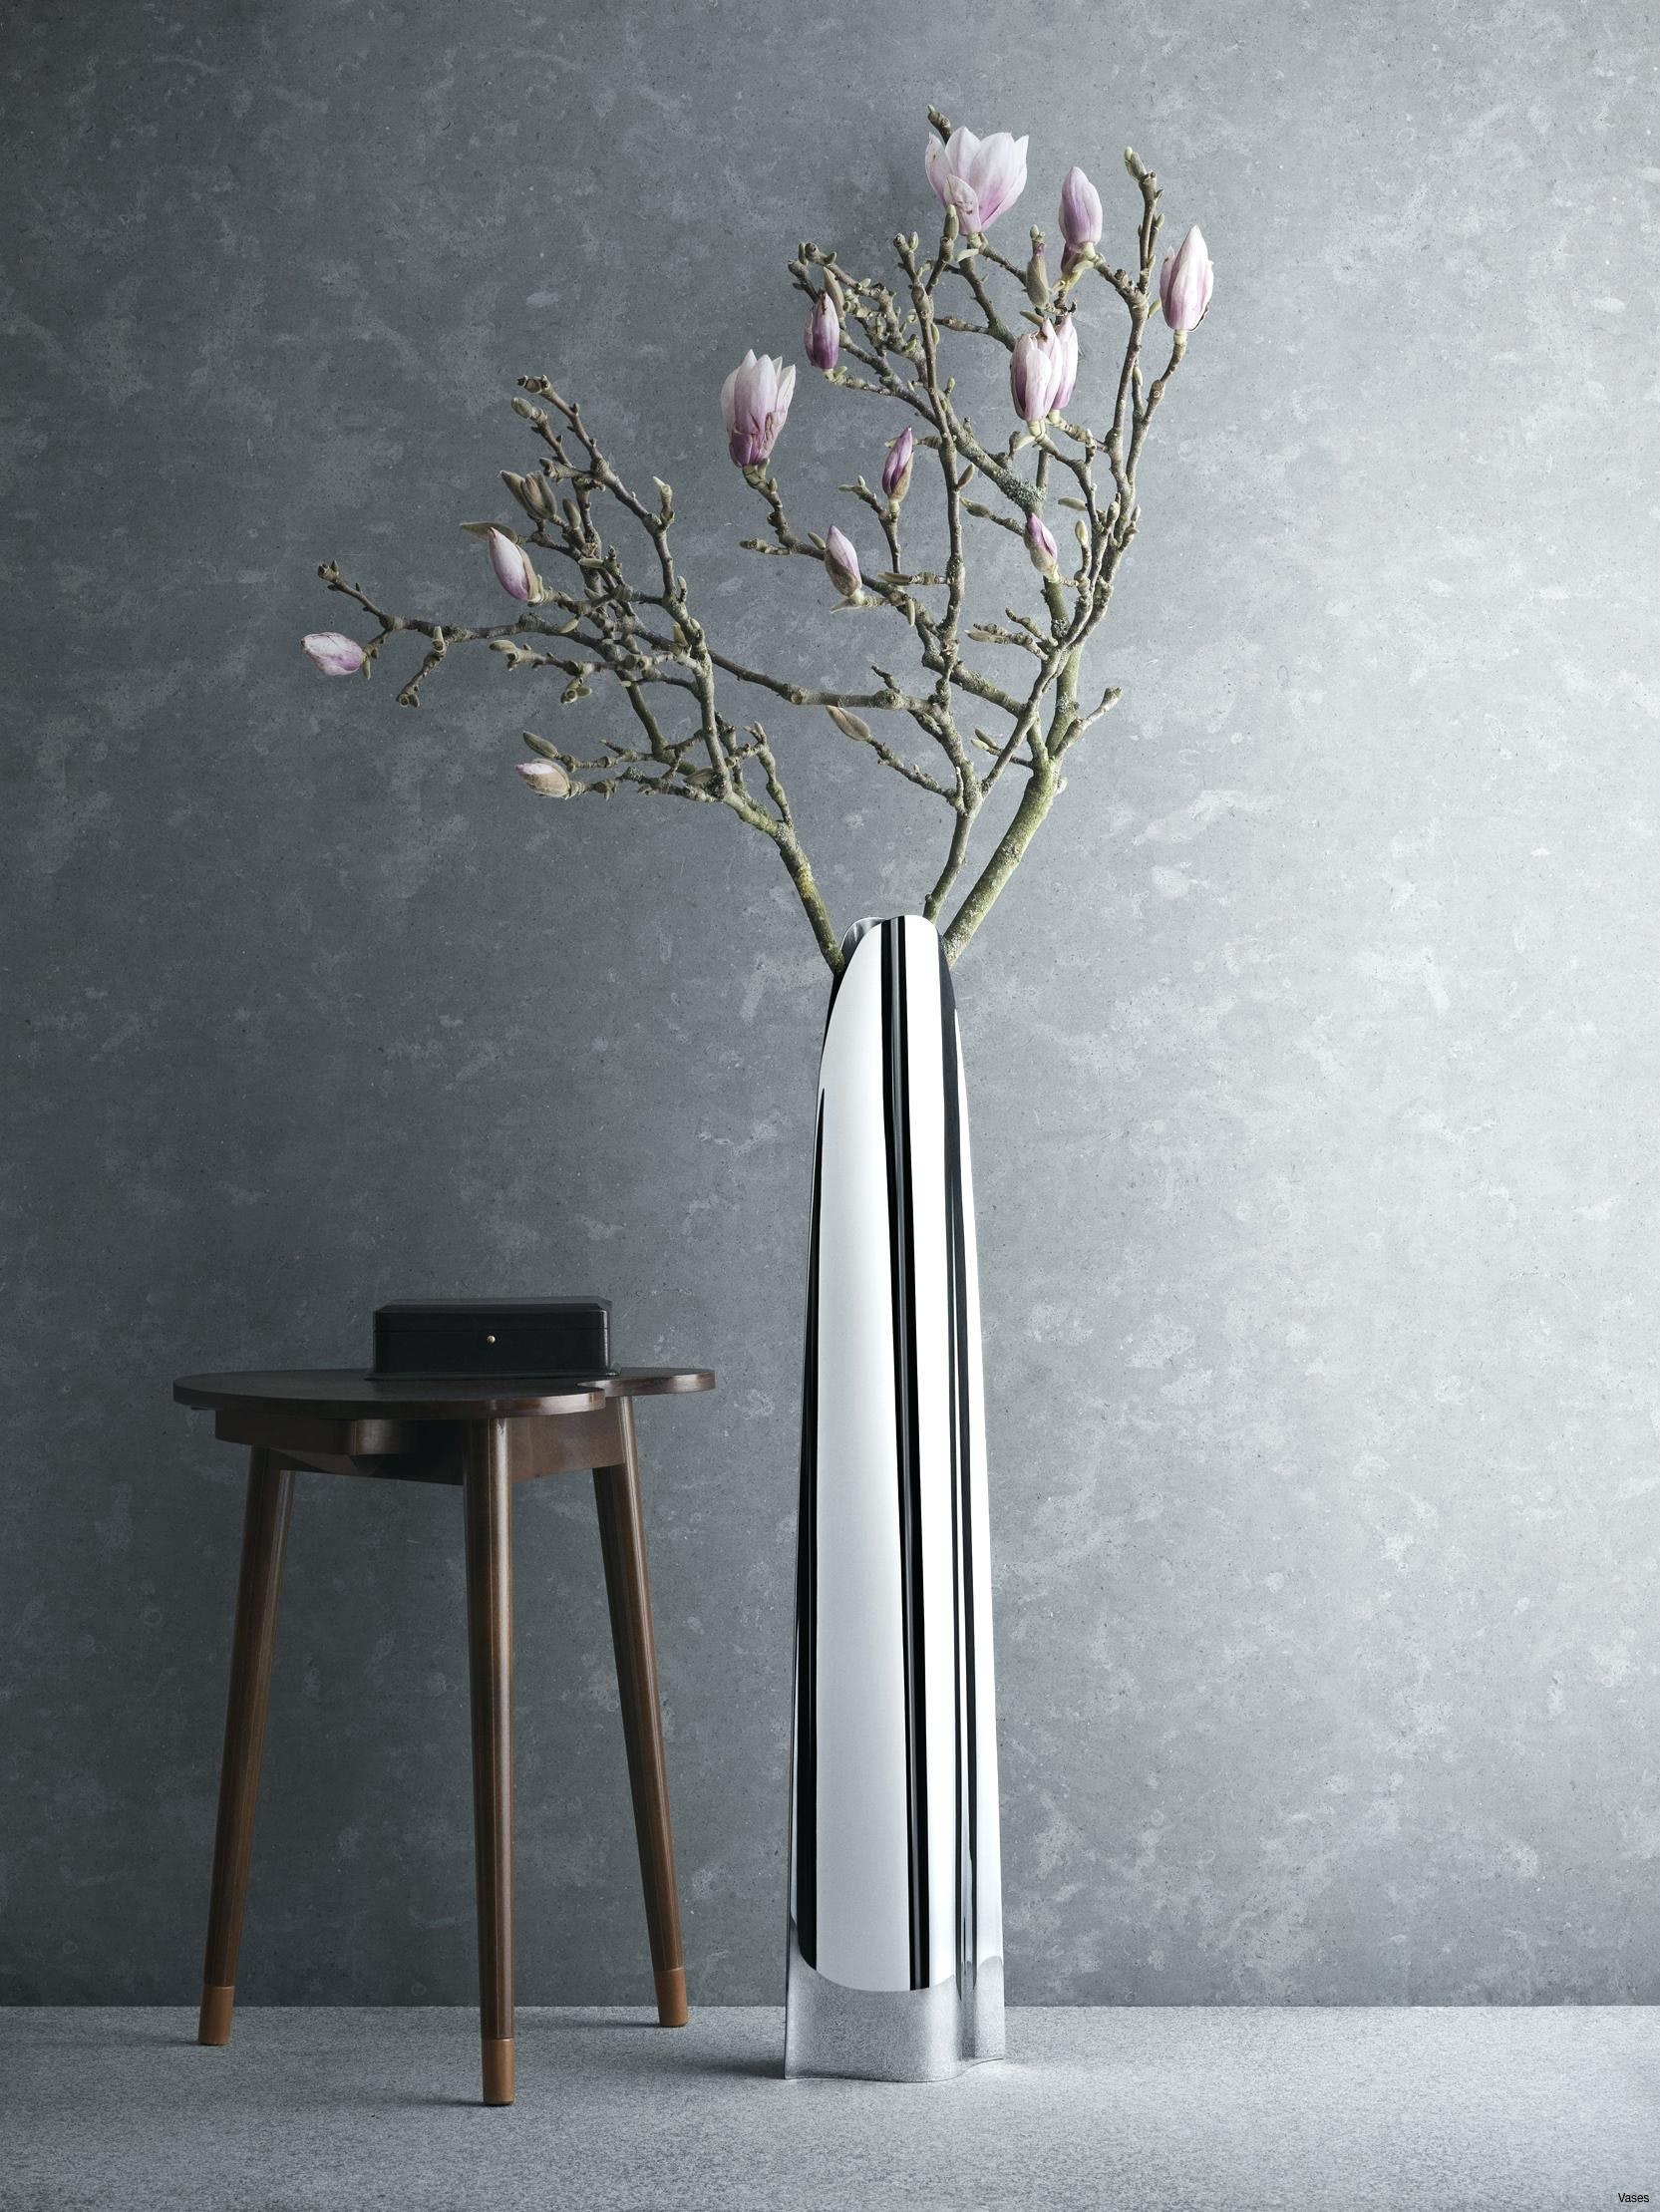 Colored Vase Fillers Of Decorating Ideas for Tall Vases Awesome H Vases Giant Floor Vase I with Regard to Decorating Ideas for Tall Vases Lovely Interesting Black Tall Floor Vase for Exciting Living Room Design